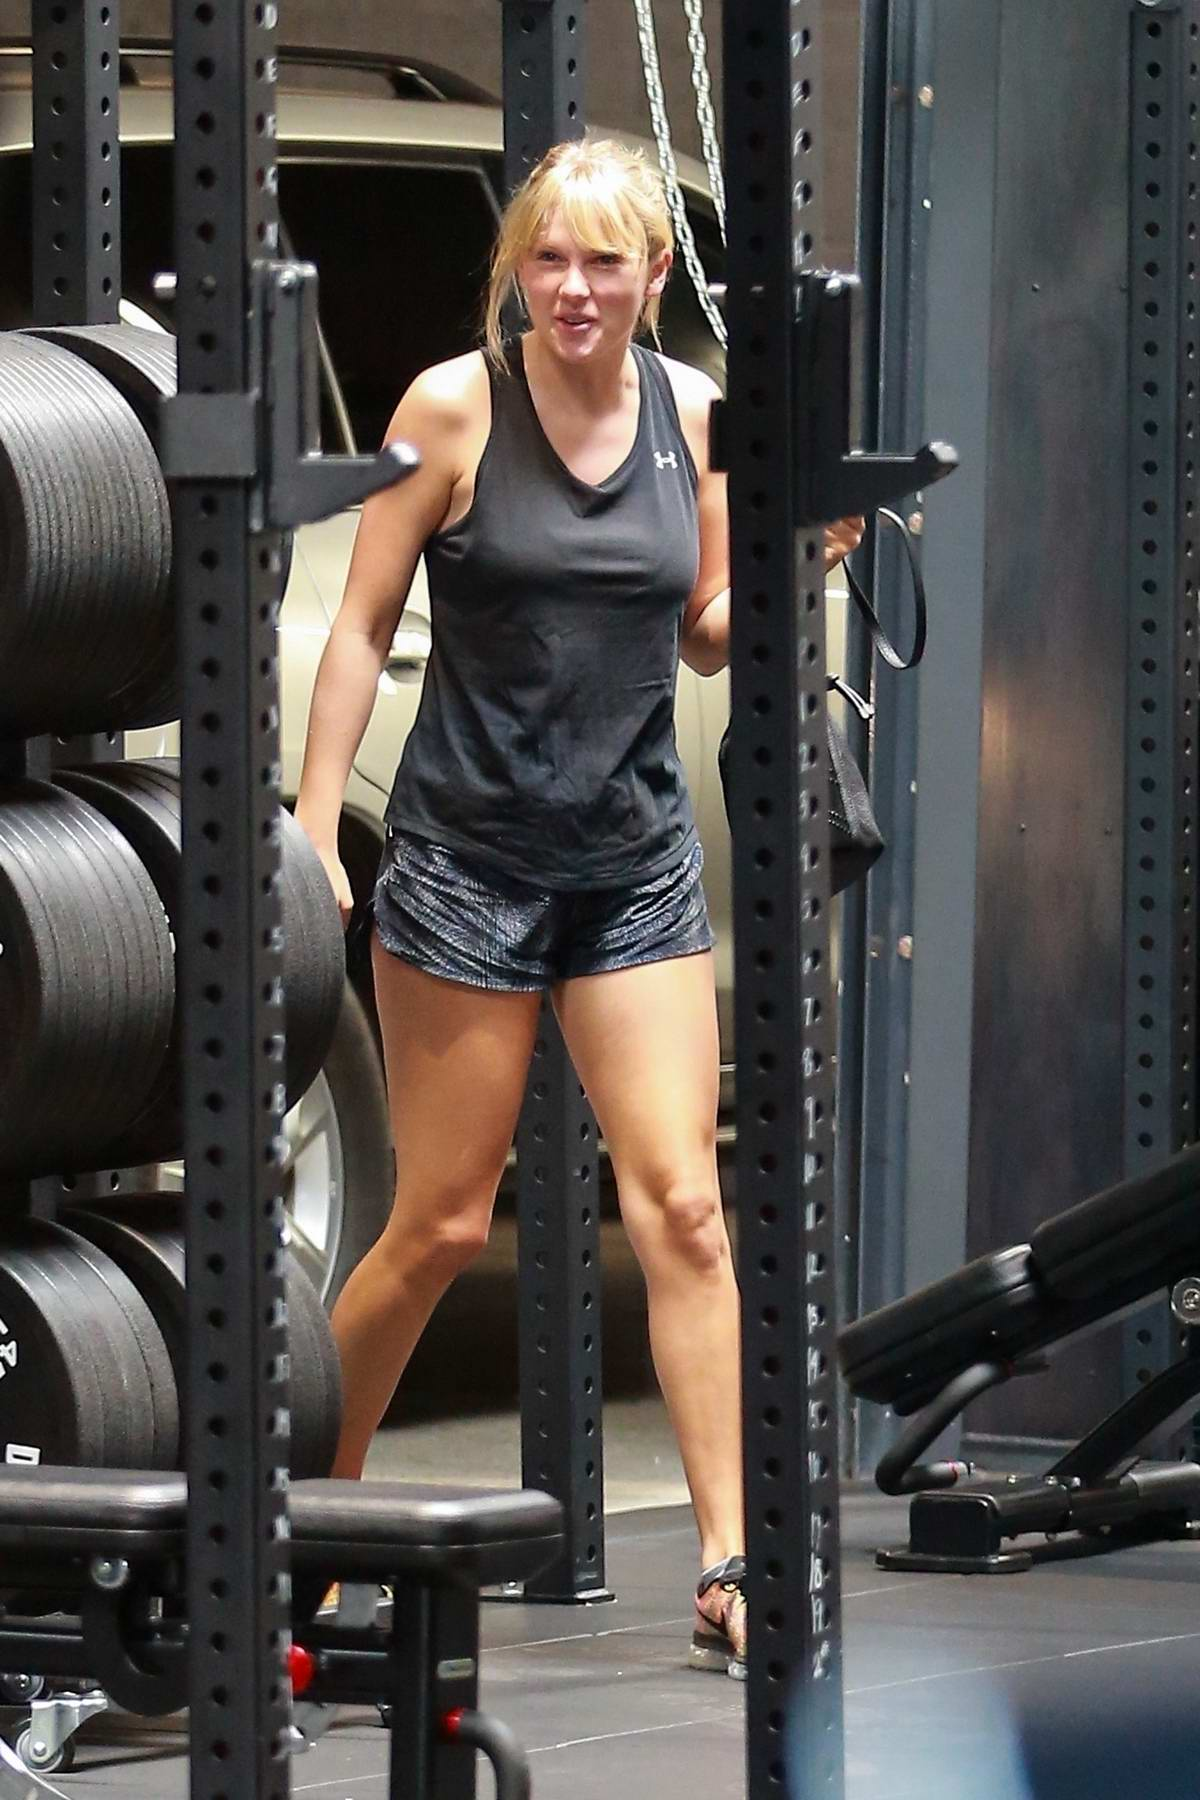 Taylor Swift spotted in black tank top and shorts during a workout session at Dogpound gym in West Hollywood, Los Angeles